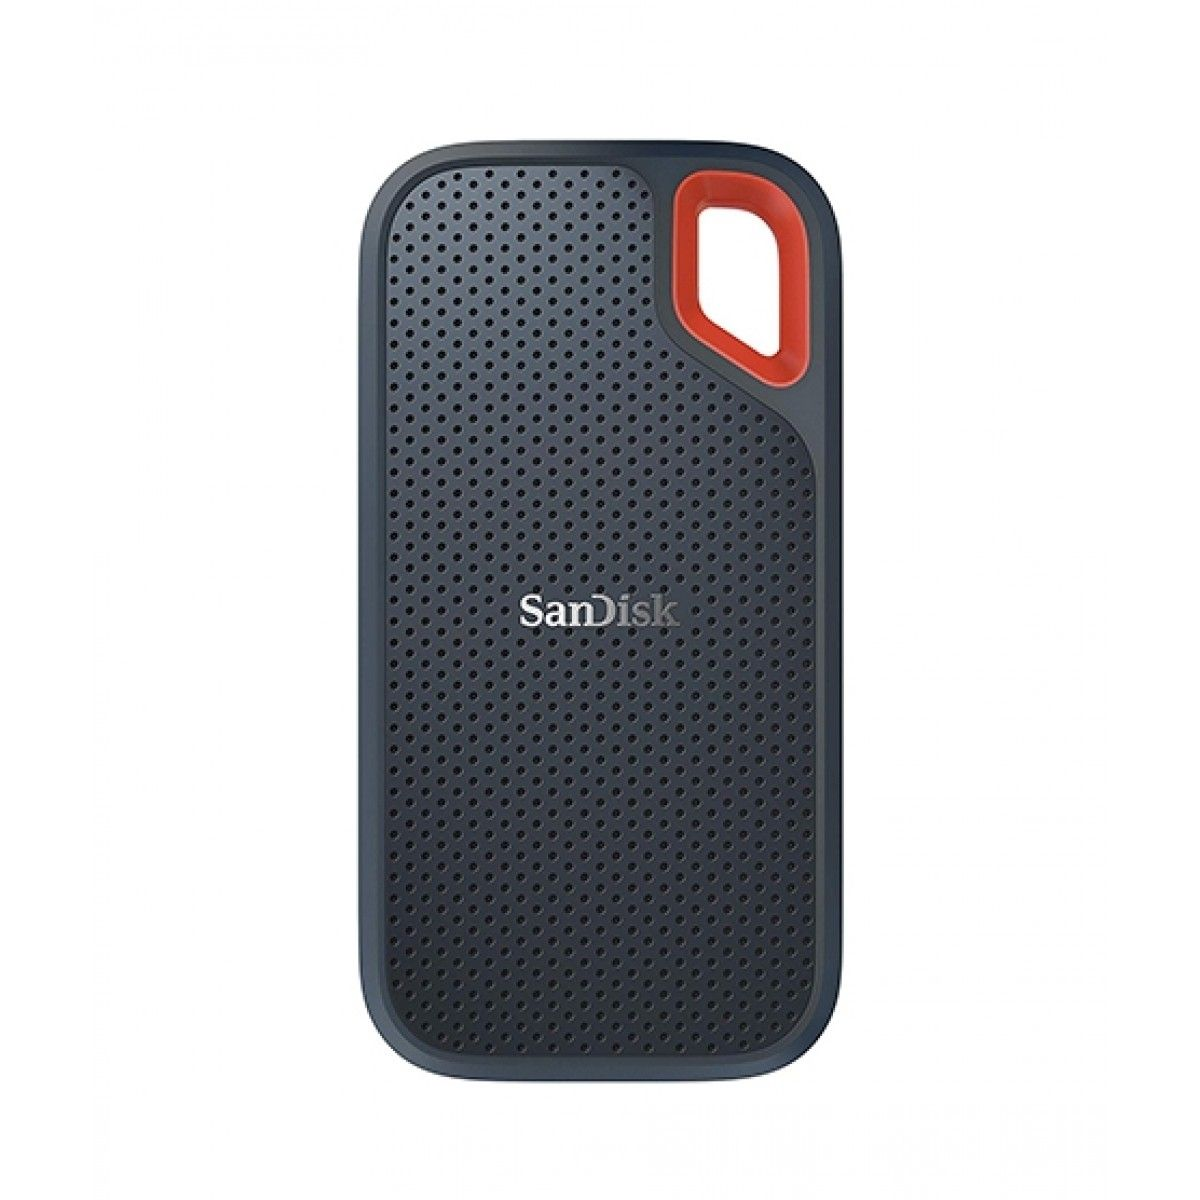 SanDisk Extreme 2TB Portable Solid State Drive